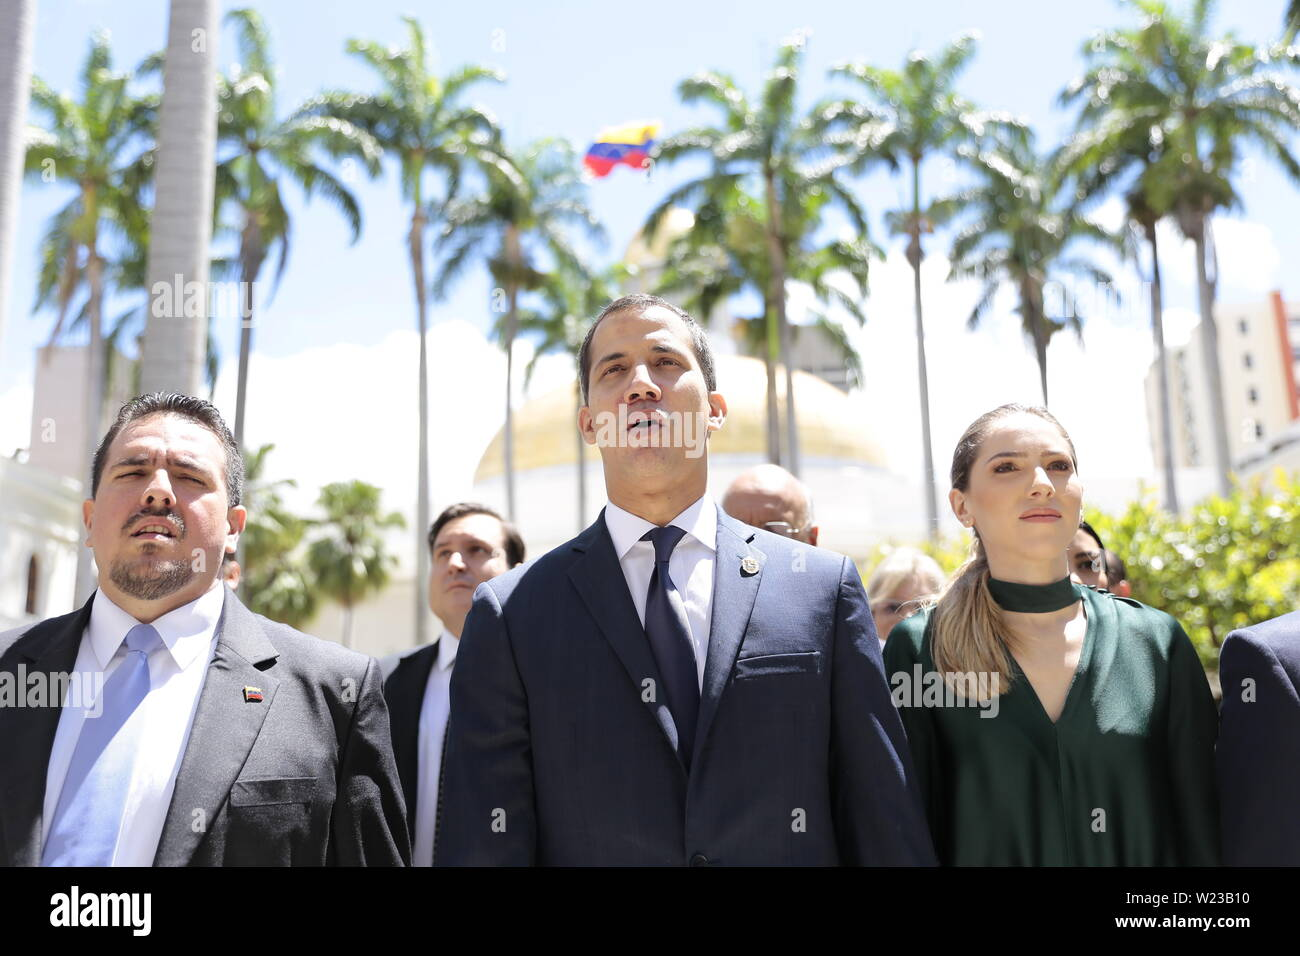 Caracas, Venezuela. 05th July, 2019. Juan Guaido (M.), self-proclaimed interim president of Venezuela, and his wife Fabiana Rosales (r) are taking part in an Independence Day event on the premises of the National Assembly. Guaido has called on civil society to protest against the government of Head of State Maduro. Venezuela commemorates on July 5 the independence of Spain in 1811. Credit: Rafael Hernandez/dpa/Alamy Live News - Stock Image